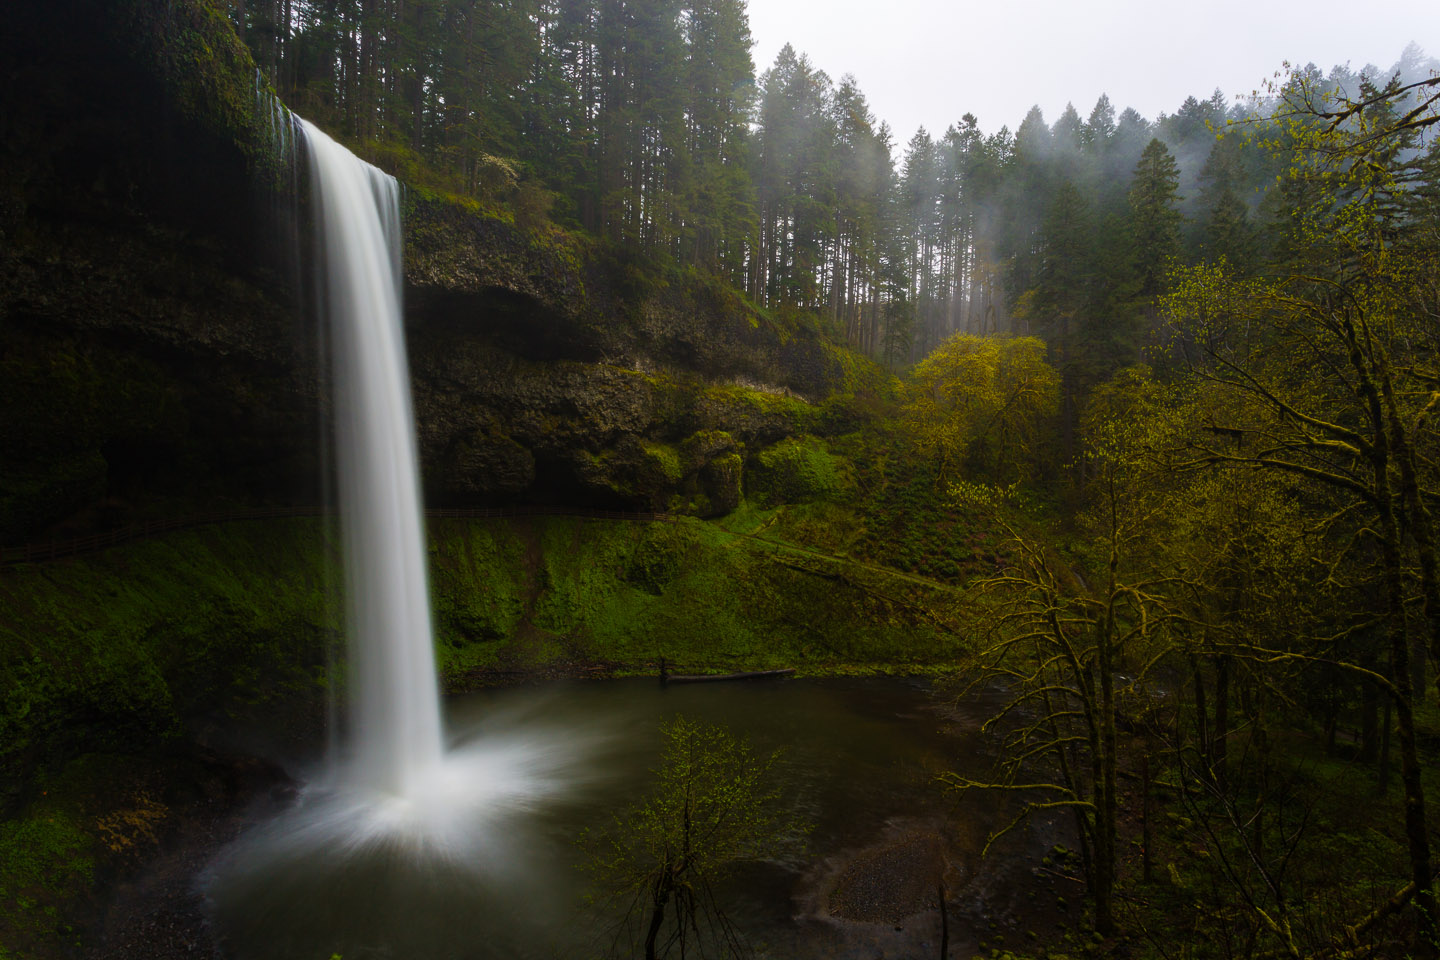 Gorgeous Waterfall in Silver Falls State Park in Oregon